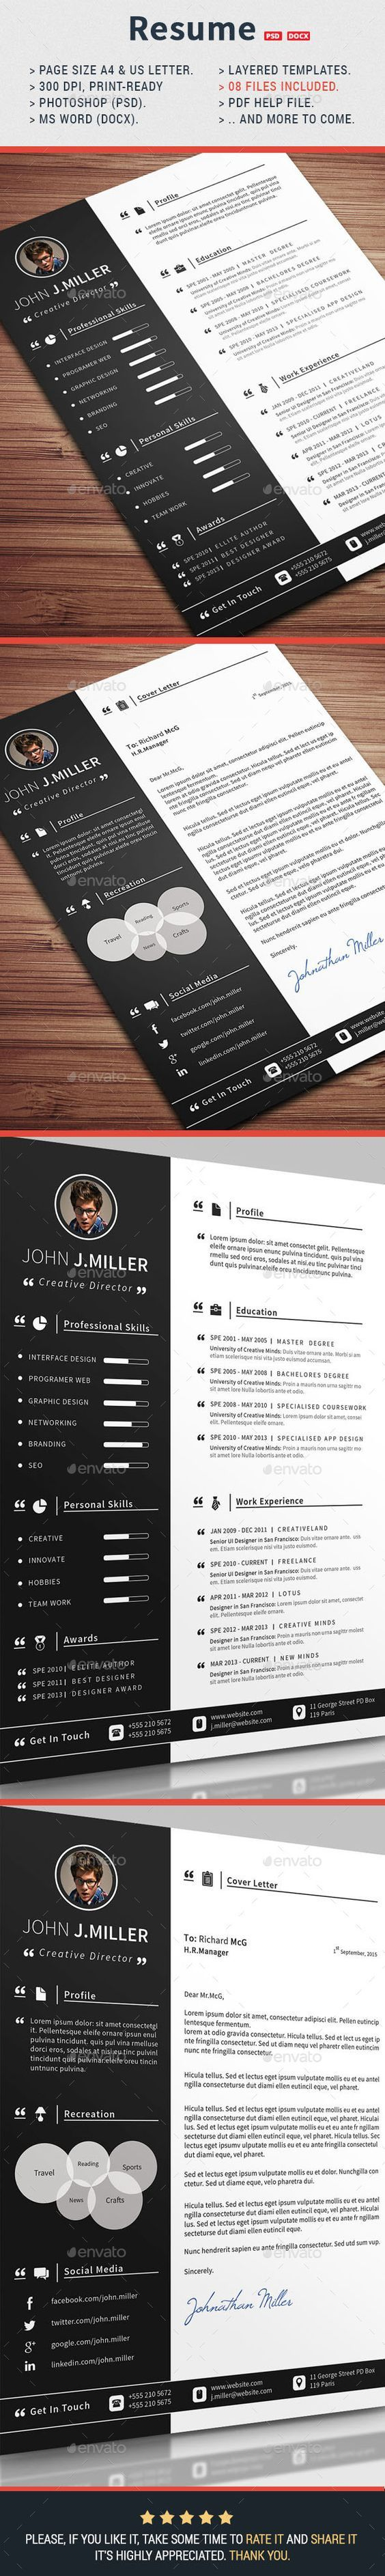 Resume Template design Download httpgraphicrivernetitem 10 best